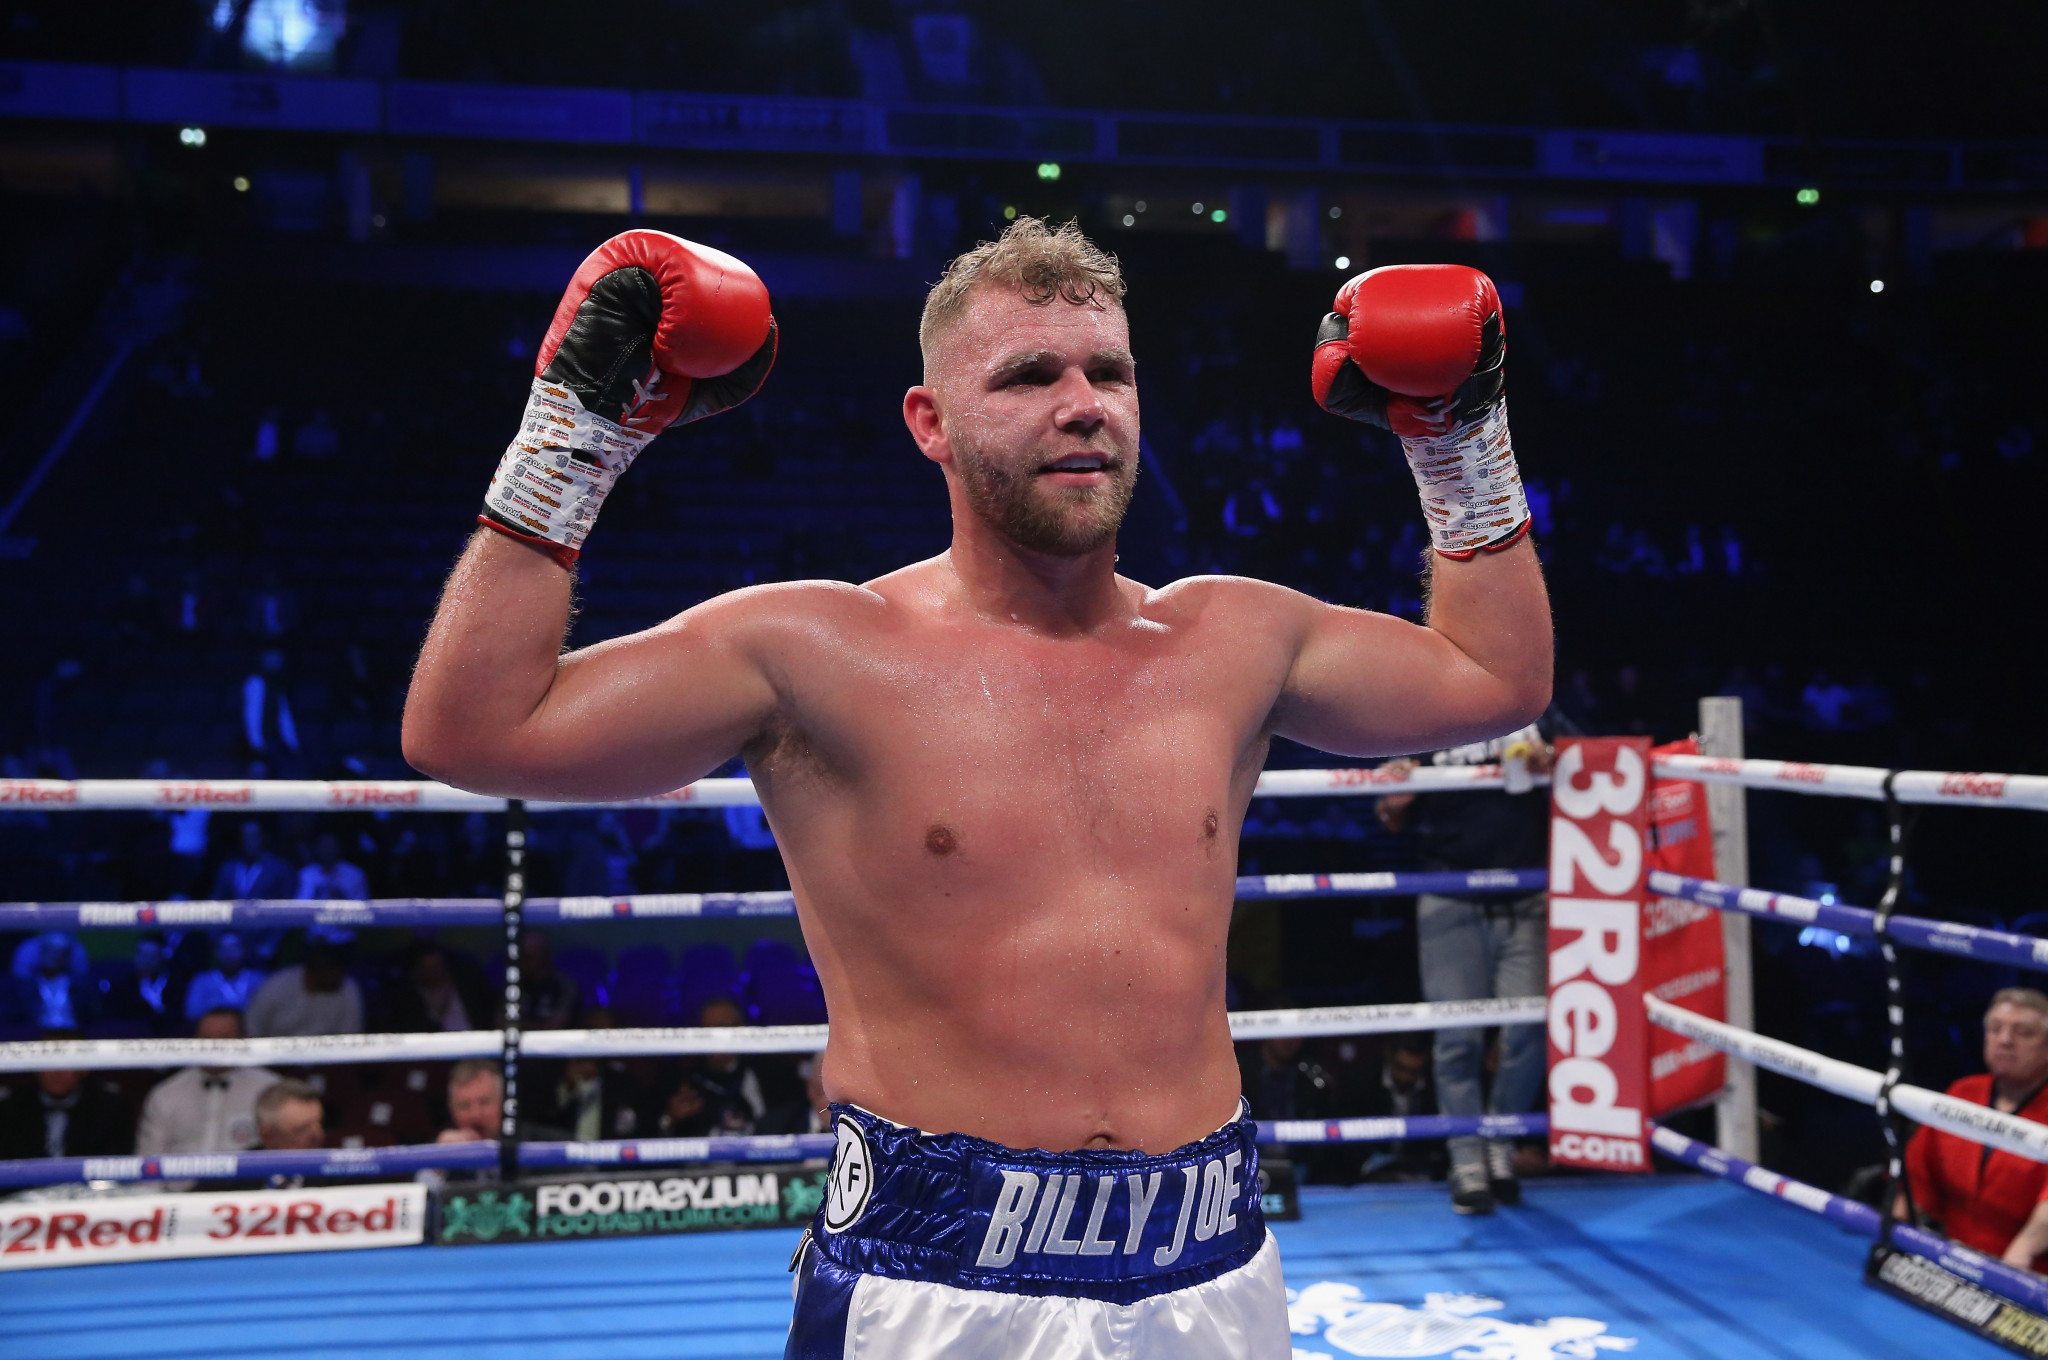 British Olympian Billy Joe Saunders has boxing license suspended